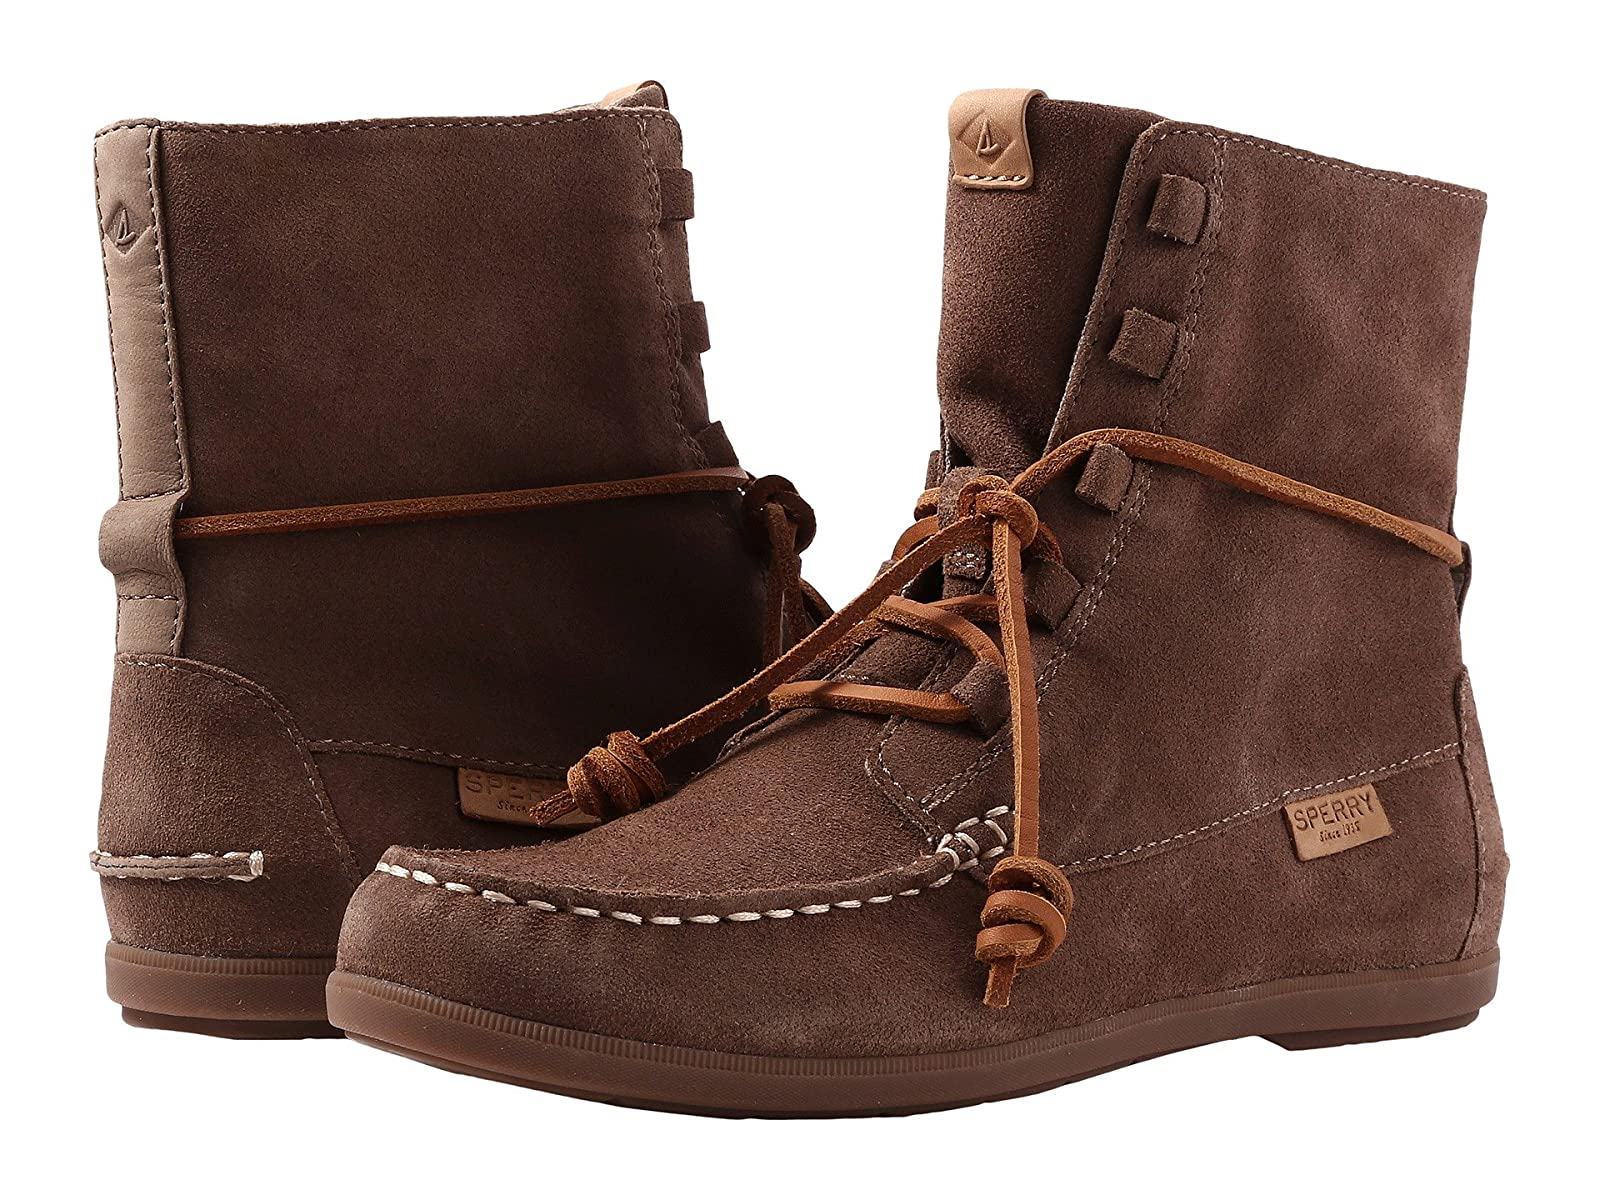 Sperry Coil Hook SuedeCheap and distinctive eye-catching shoes